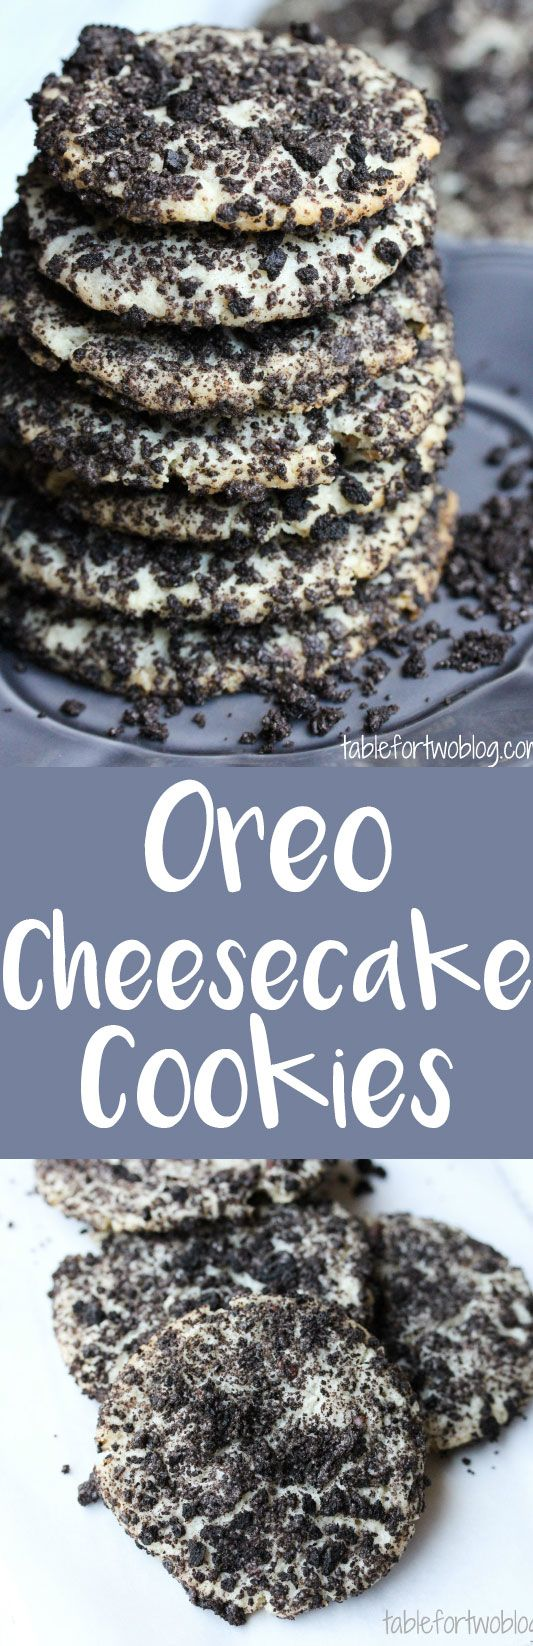 Oreo cheesecake cookies are so addicting! http://www.tablefortwoblog.com/oreo-cheesecake-cookies/